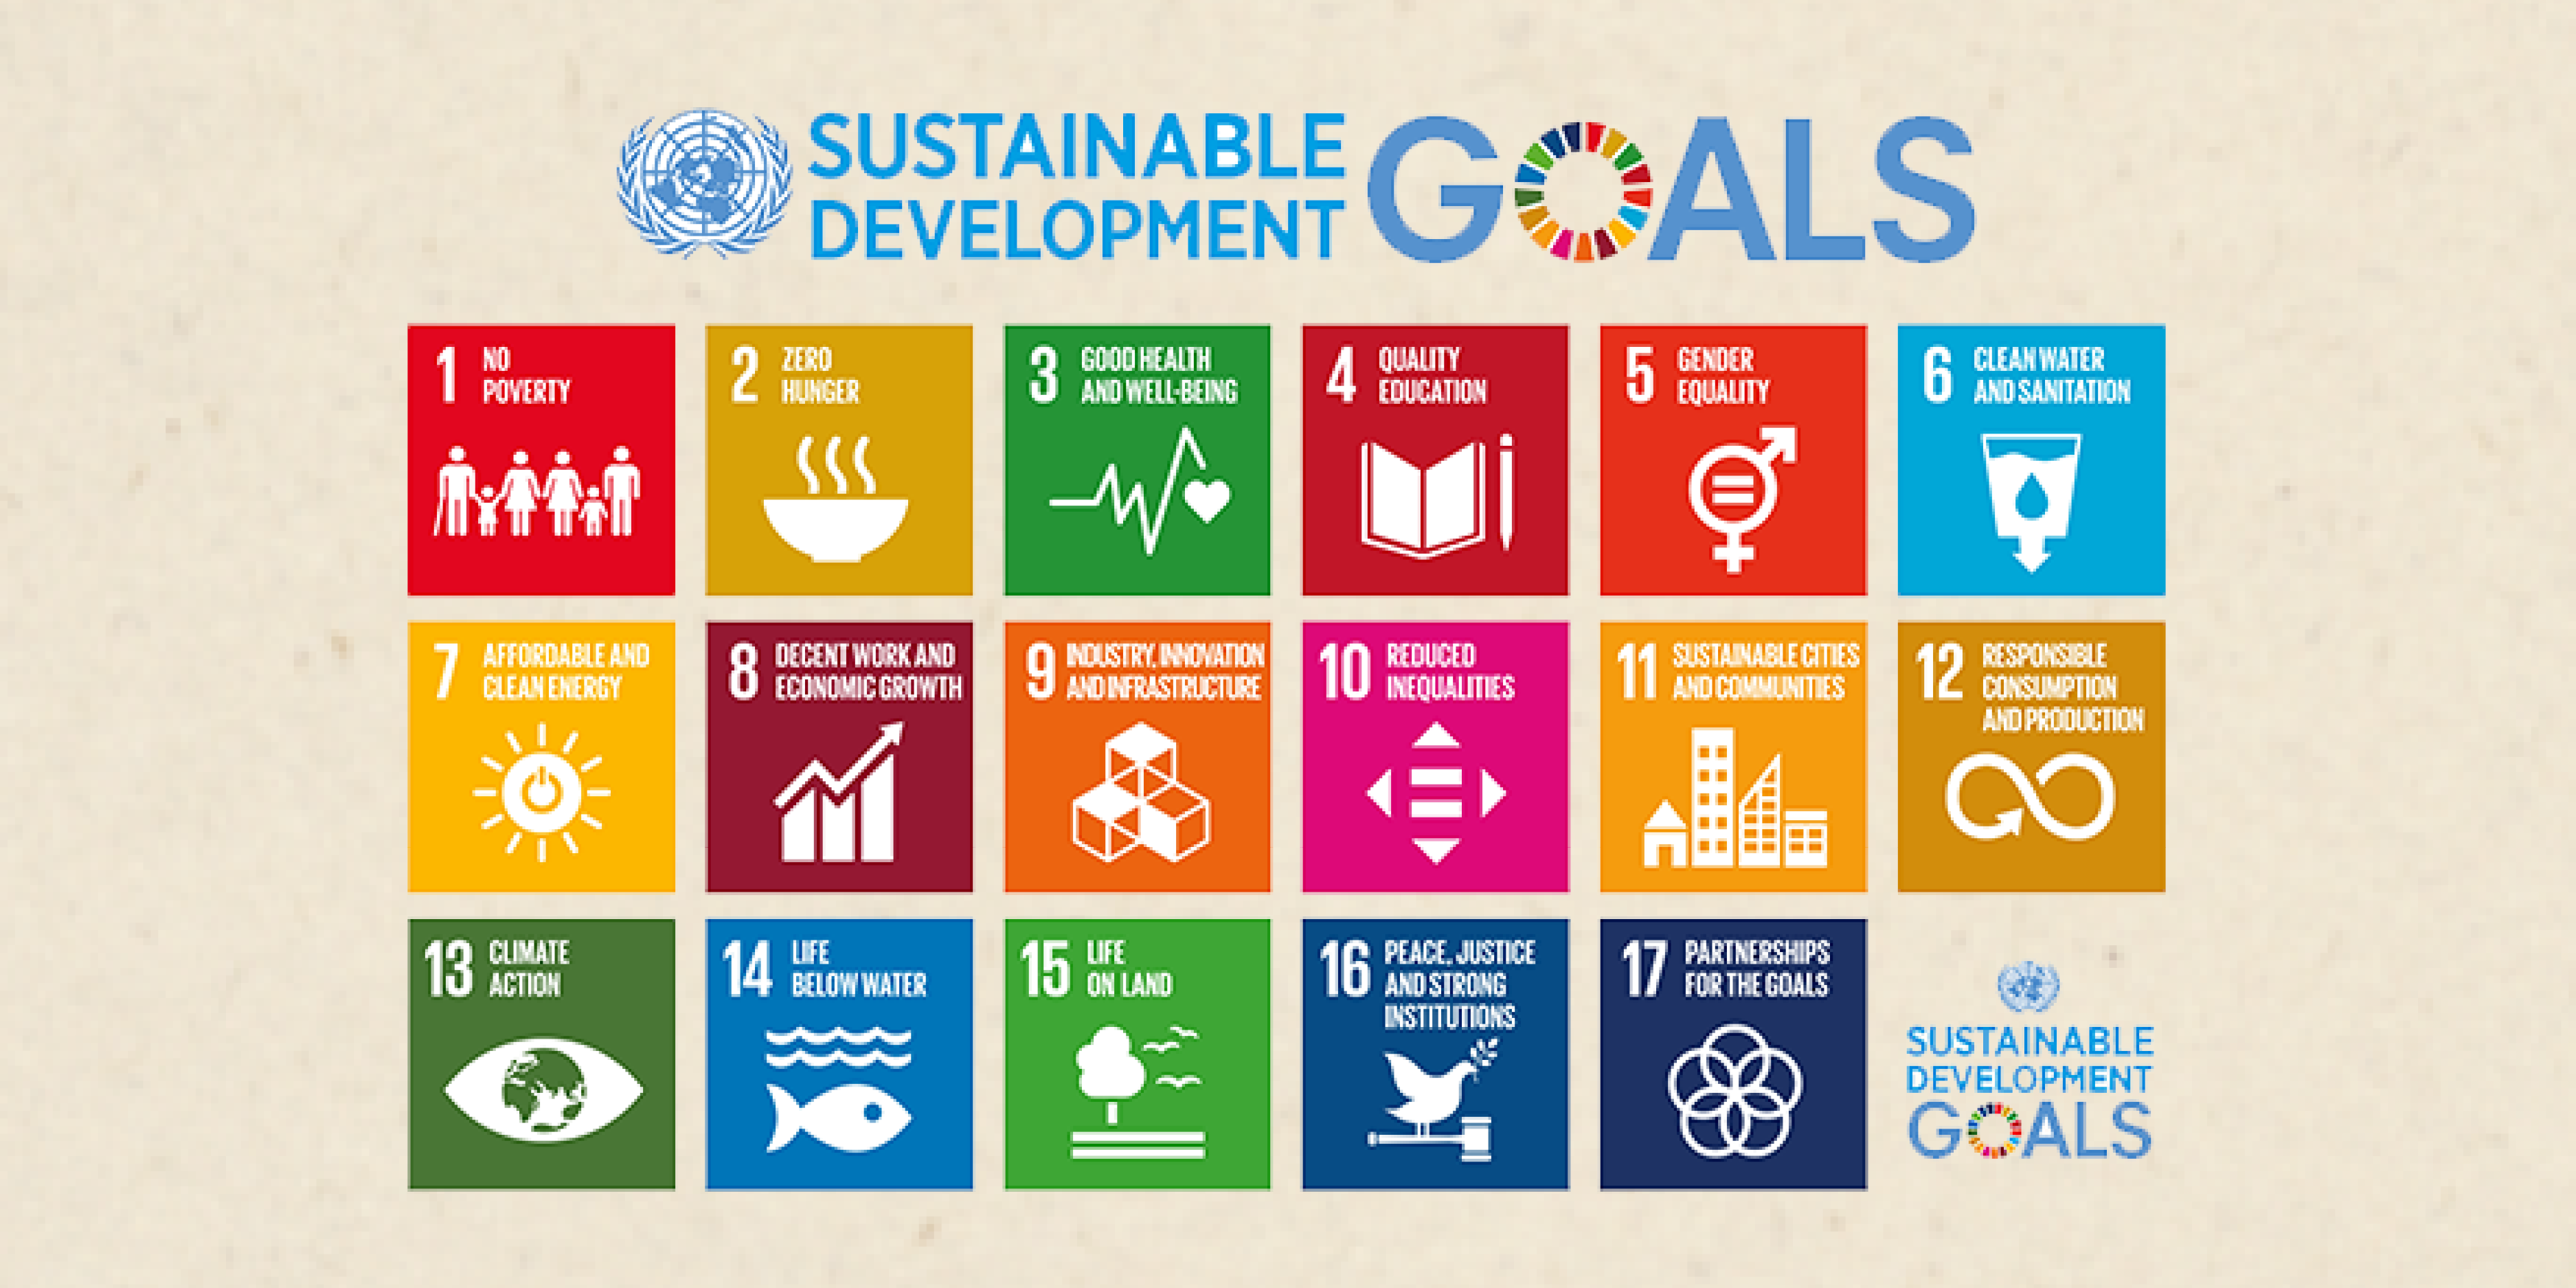 PaperWise eco friendly socially responsible paper board SDGs sustainable development goals united nations